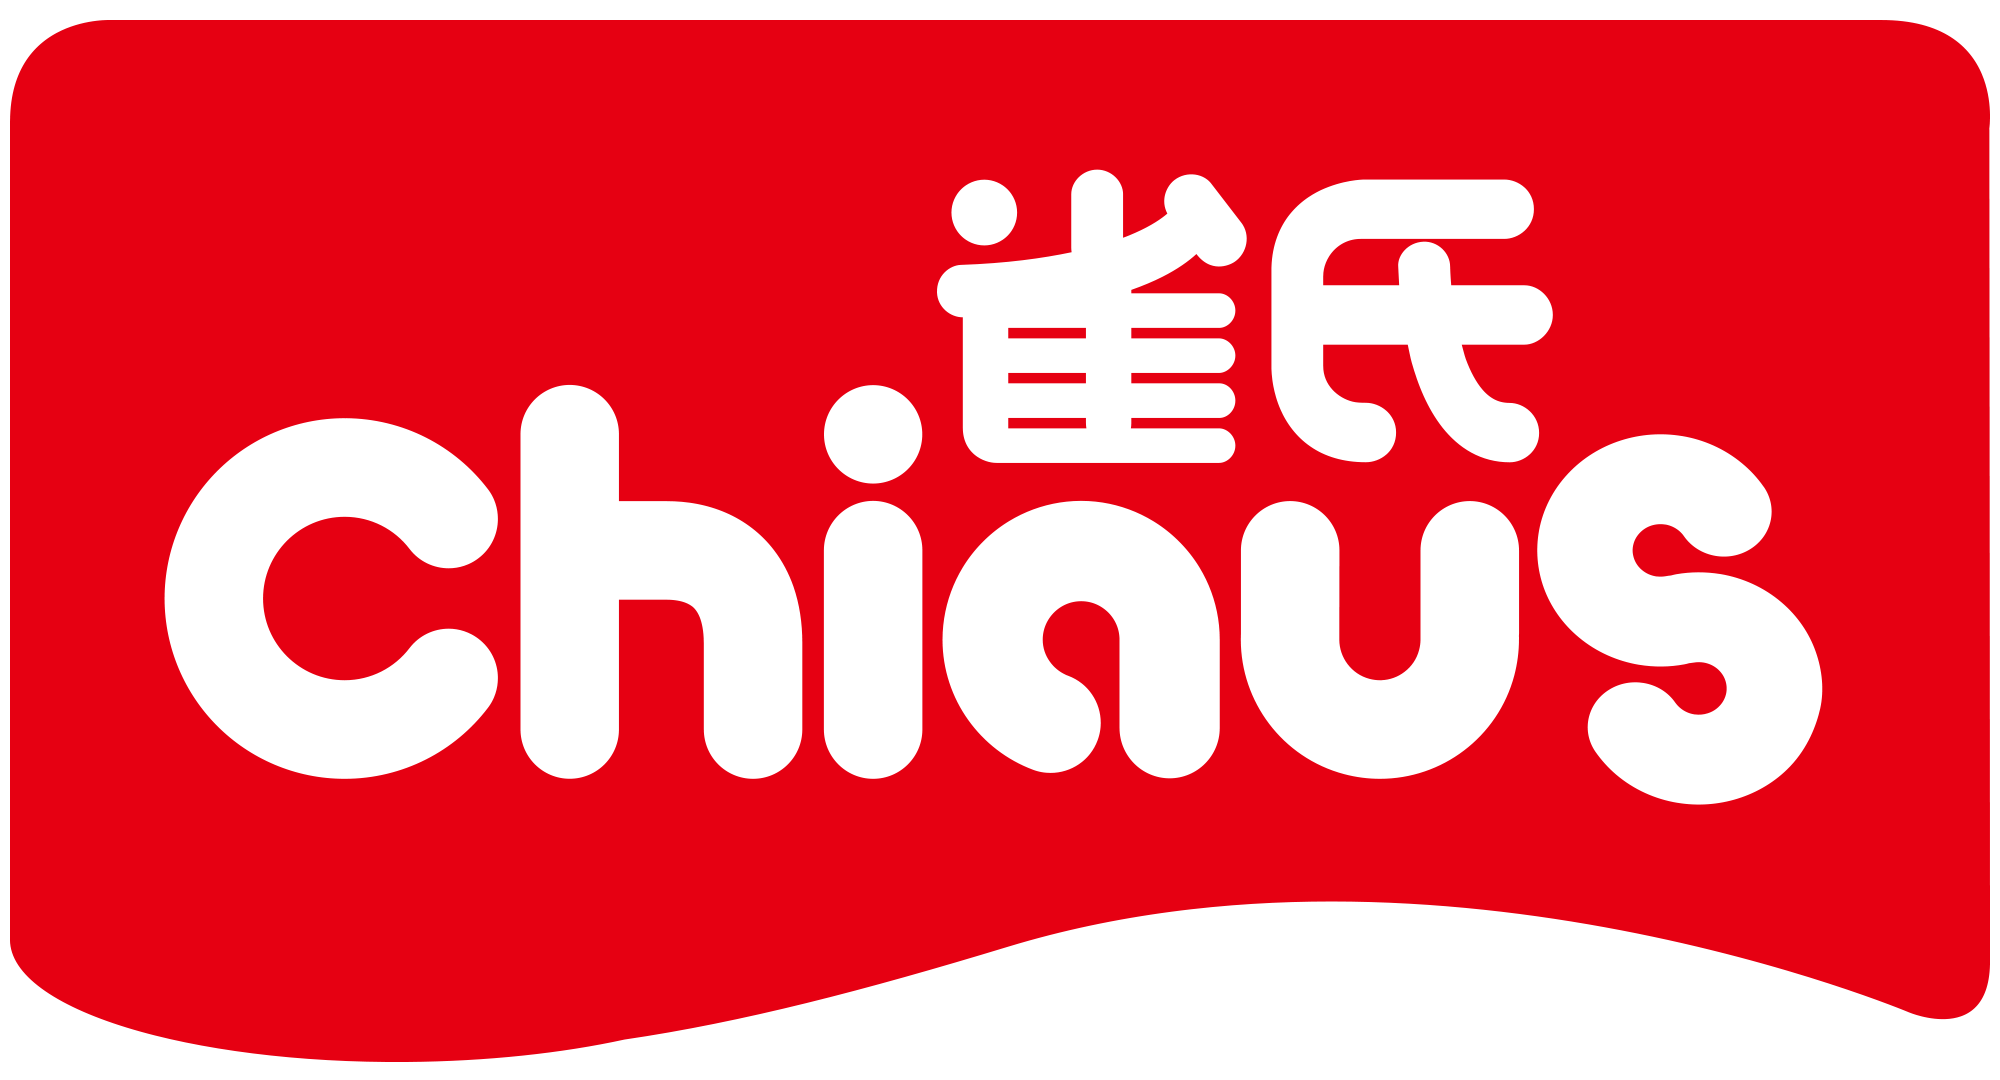 CHIAUS (FUJIAN) INDUSTRIAL DEVELOPMENT CO., LTD.